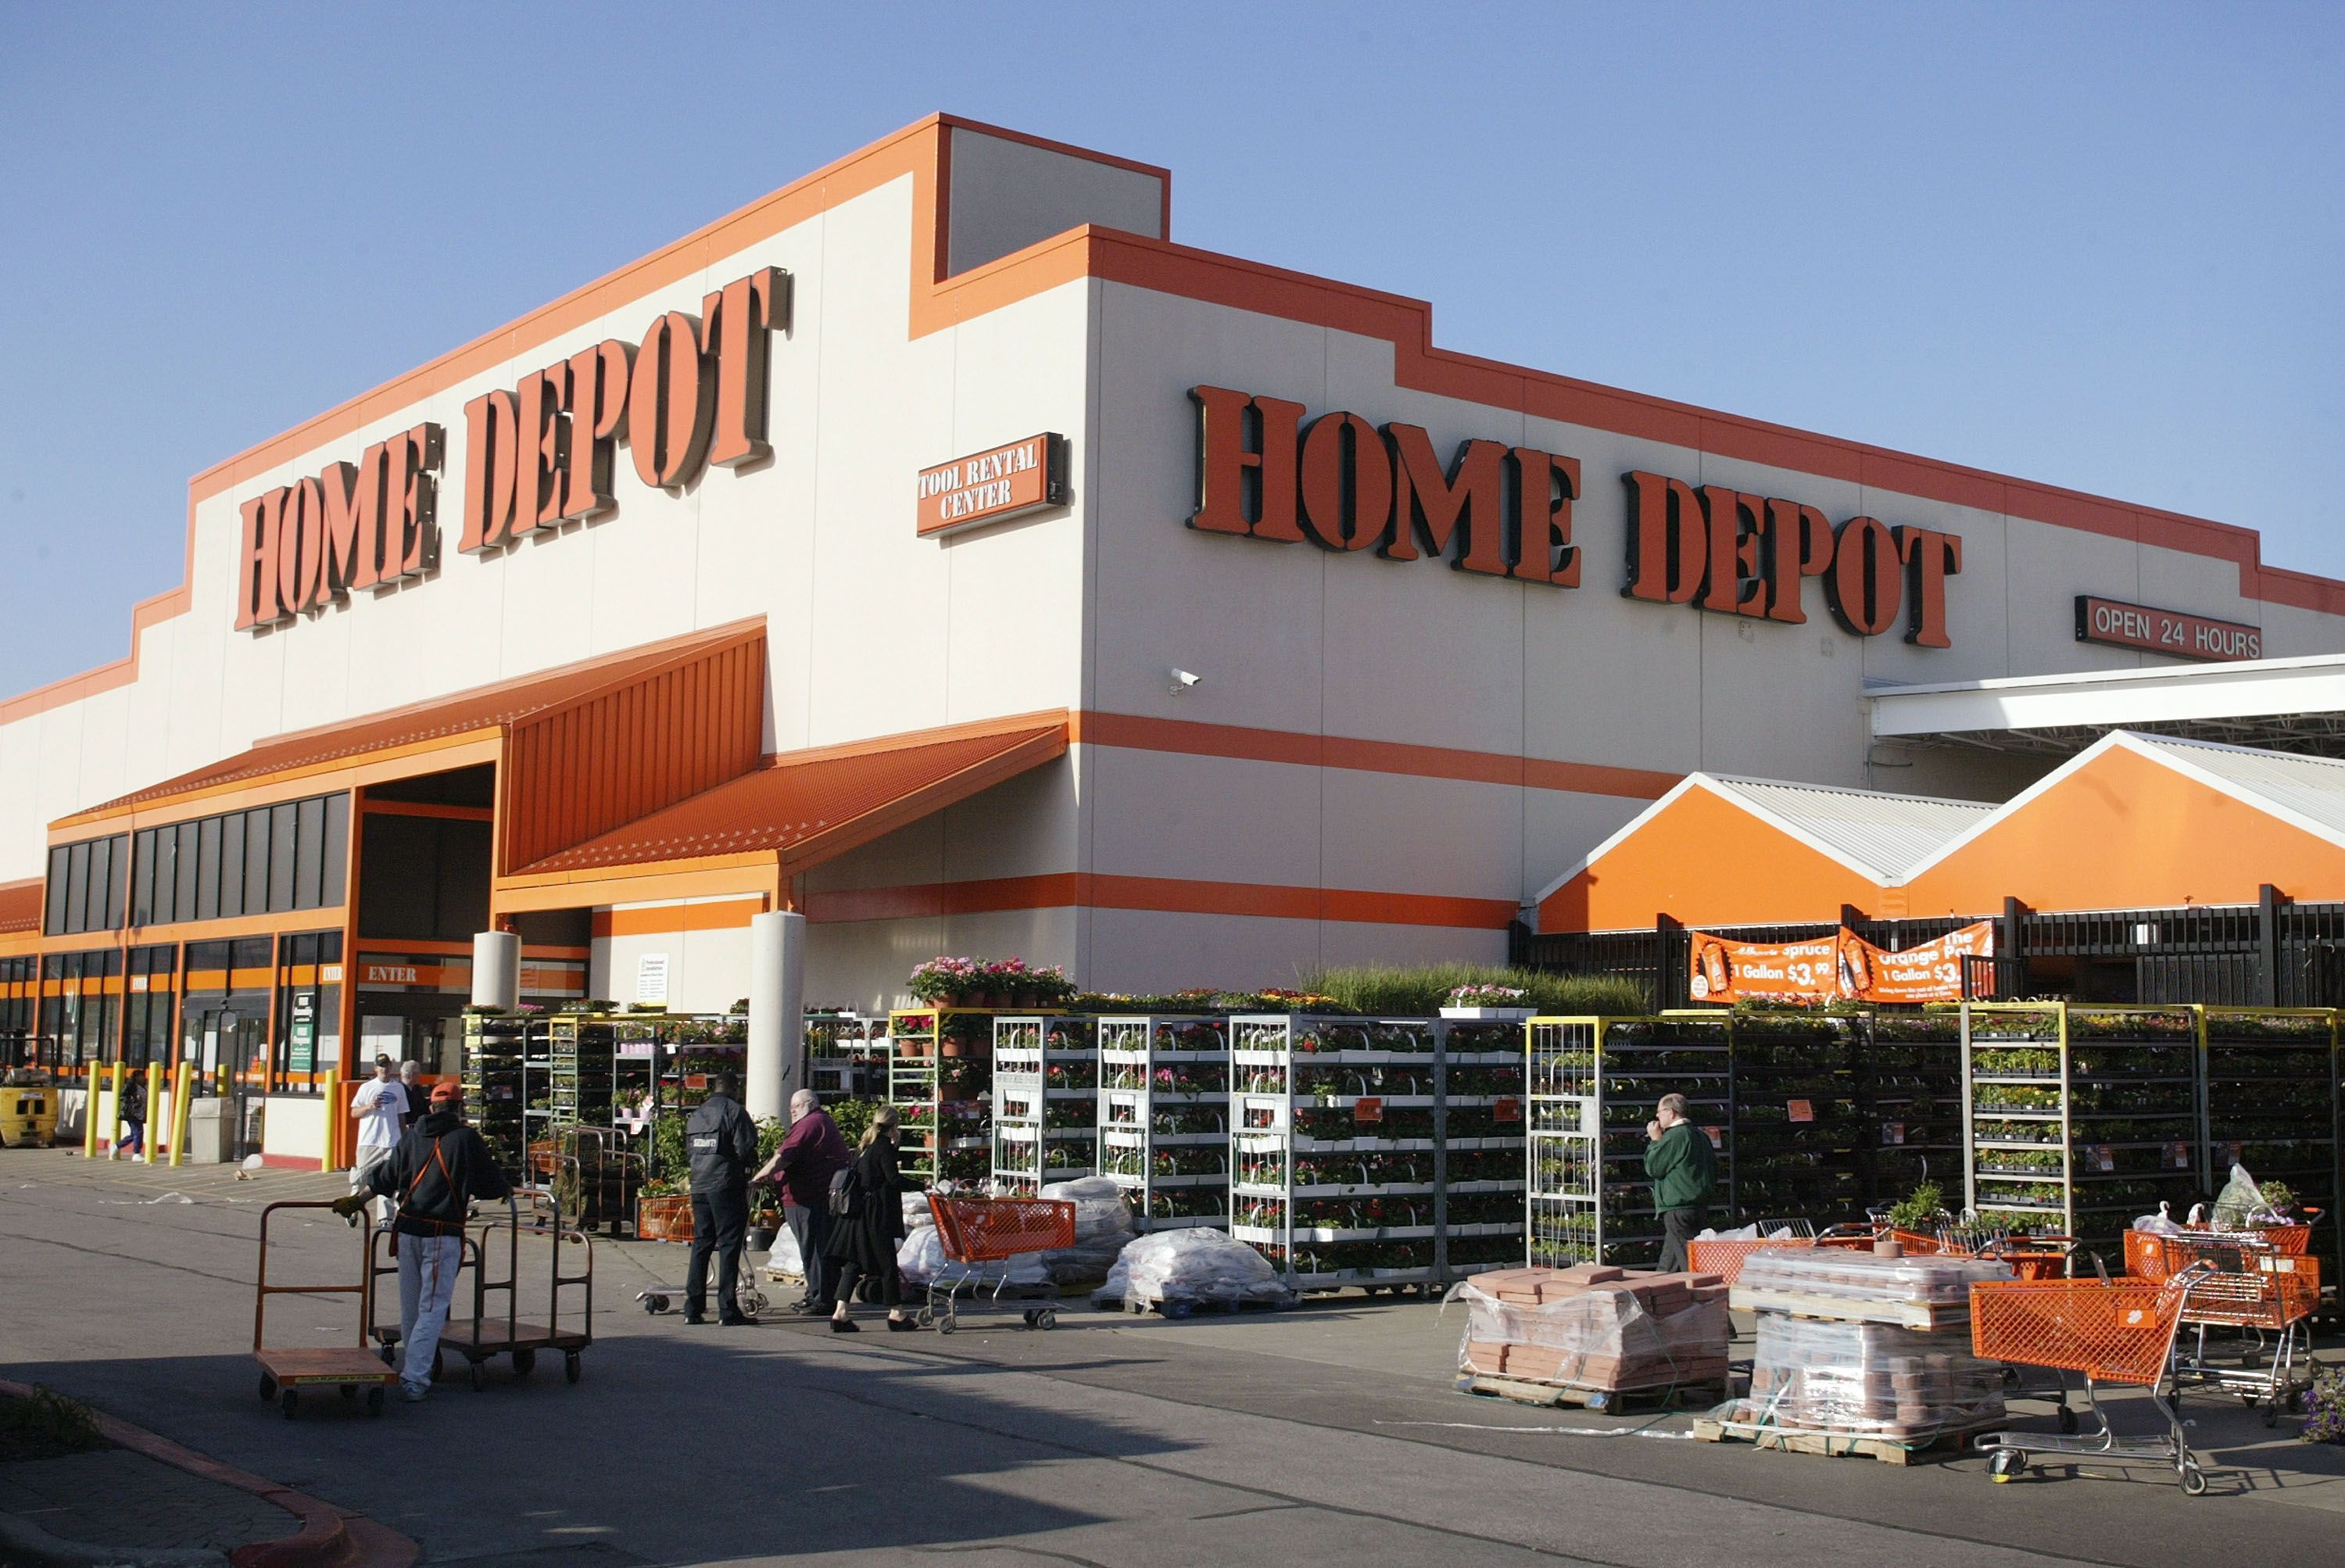 Home Depot Fun Facts, History and More Home depot, Home